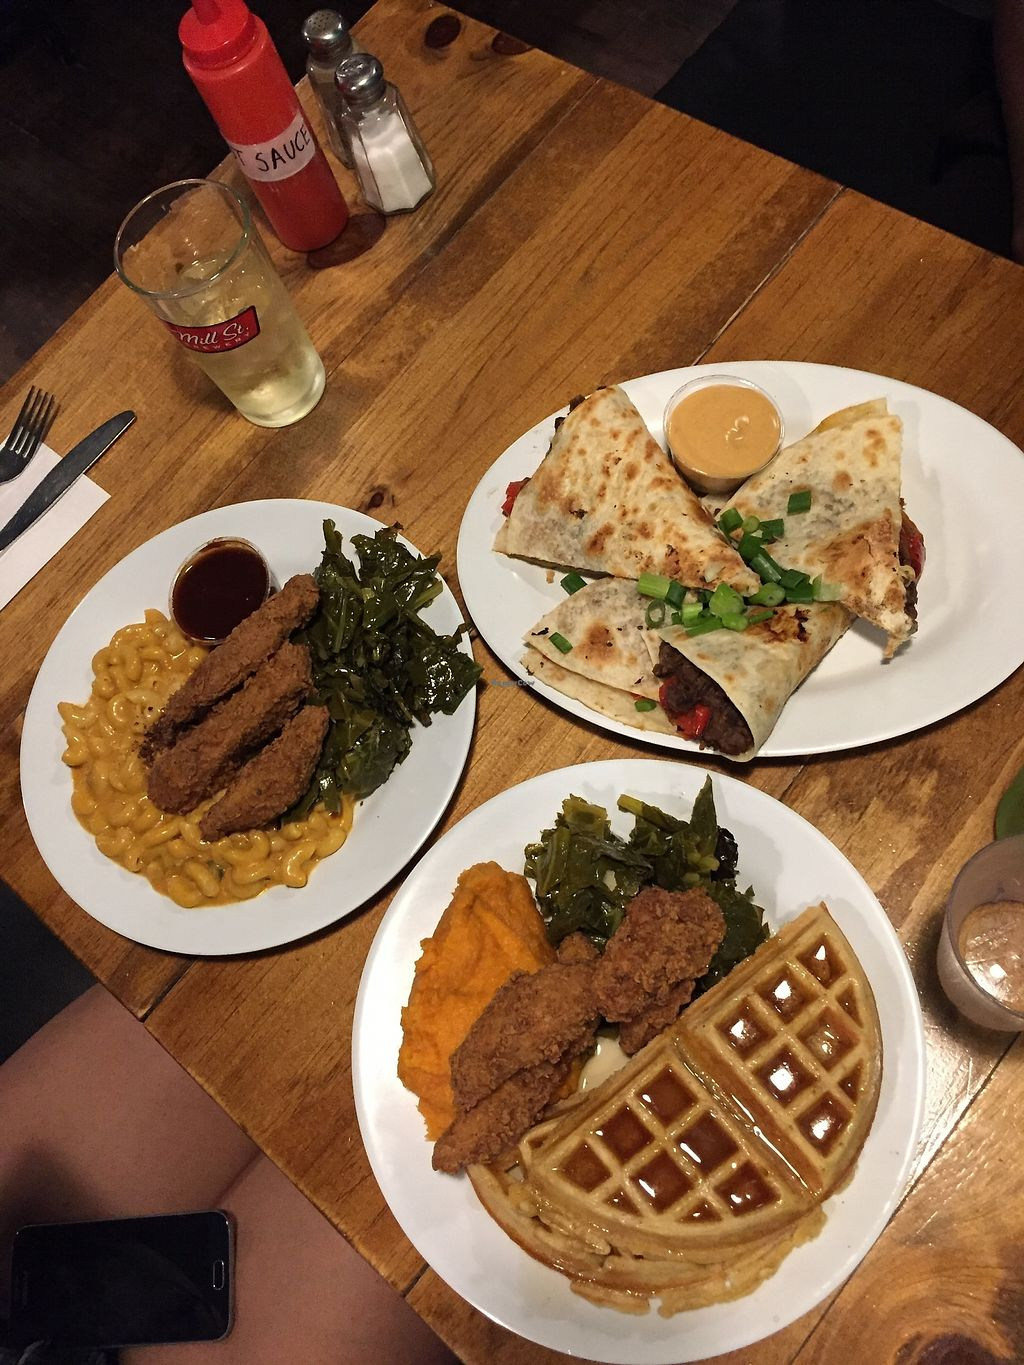 """Photo of The Hogtown Vegan  by <a href=""""/members/profile/Yasminesan"""">Yasminesan</a> <br/>Chicken n waffles, quesedilla, chicken and mac n cheese <br/> October 28, 2017  - <a href='/contact/abuse/image/27318/319648'>Report</a>"""